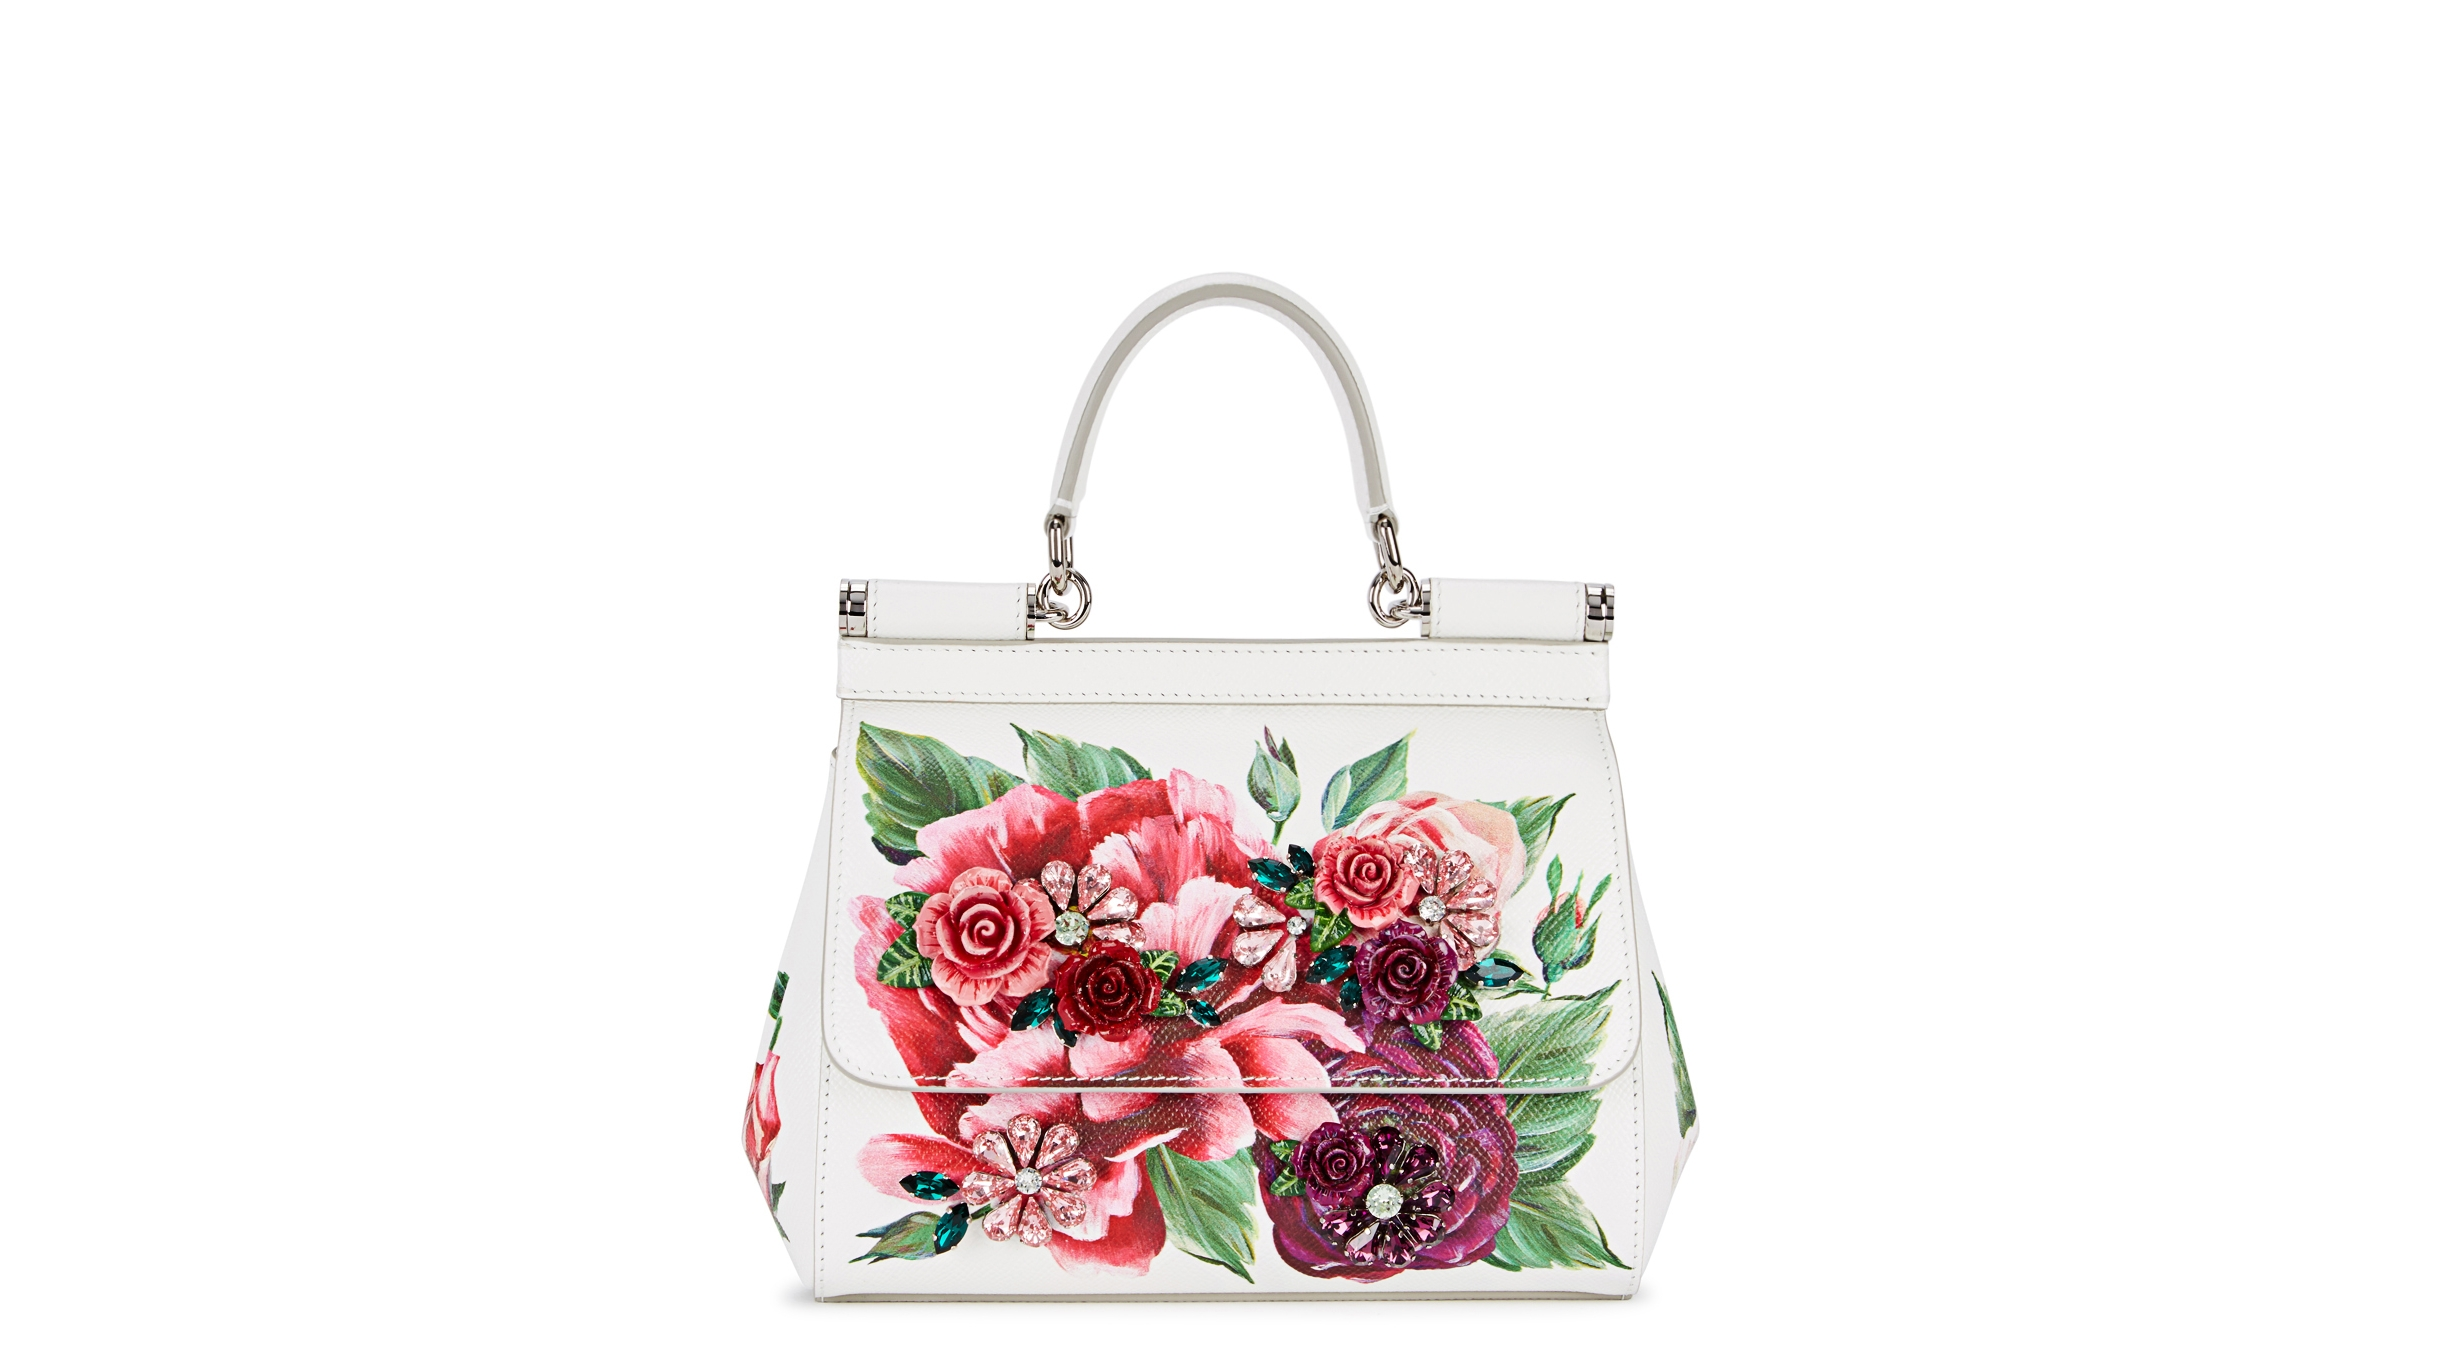 Dolce   Gabbana Sicily small floral-print leather tote - Harvey Nichols 7b50004a7c